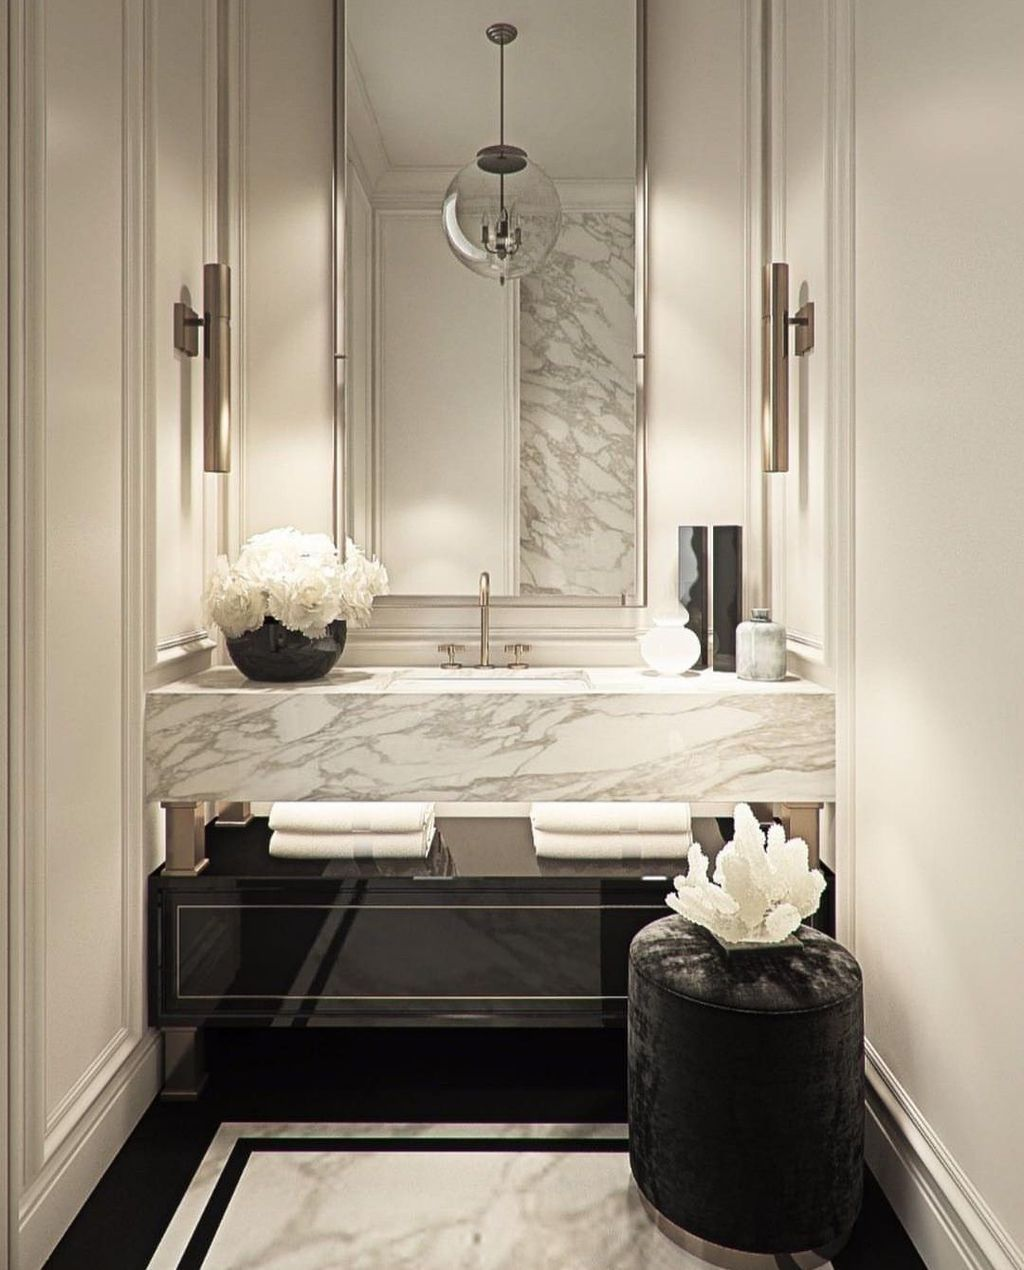 38 Beautiful Powder Room Design Ideas Powder Room Design Modern Powder Rooms Elegant Bathroom